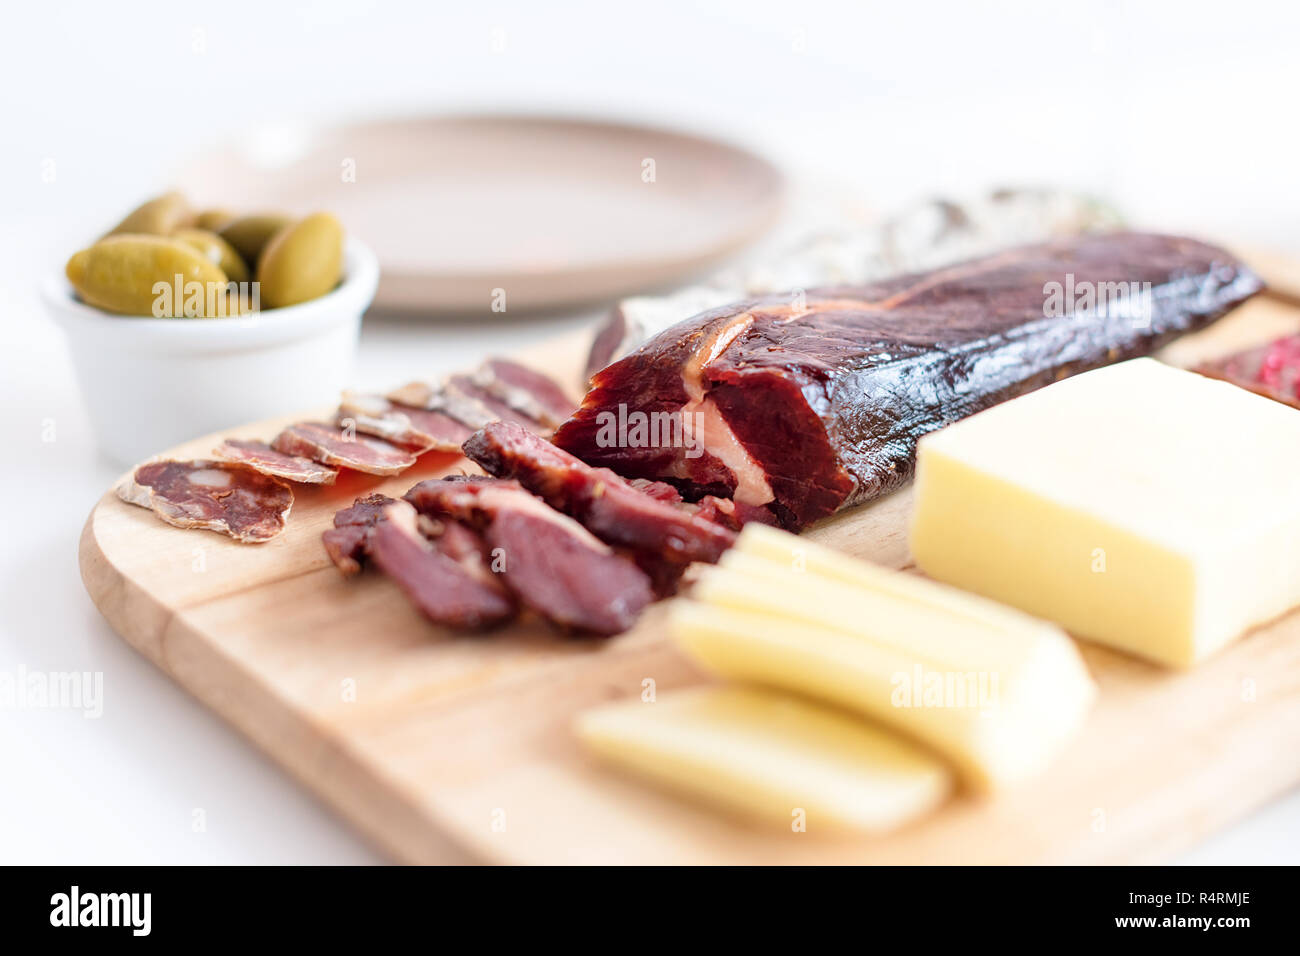 Sliced meat, cheese and chocolate. Selective focus. Food for Christmas selebration. Happy winter holidays. Presents for Christmastime Stock Photo